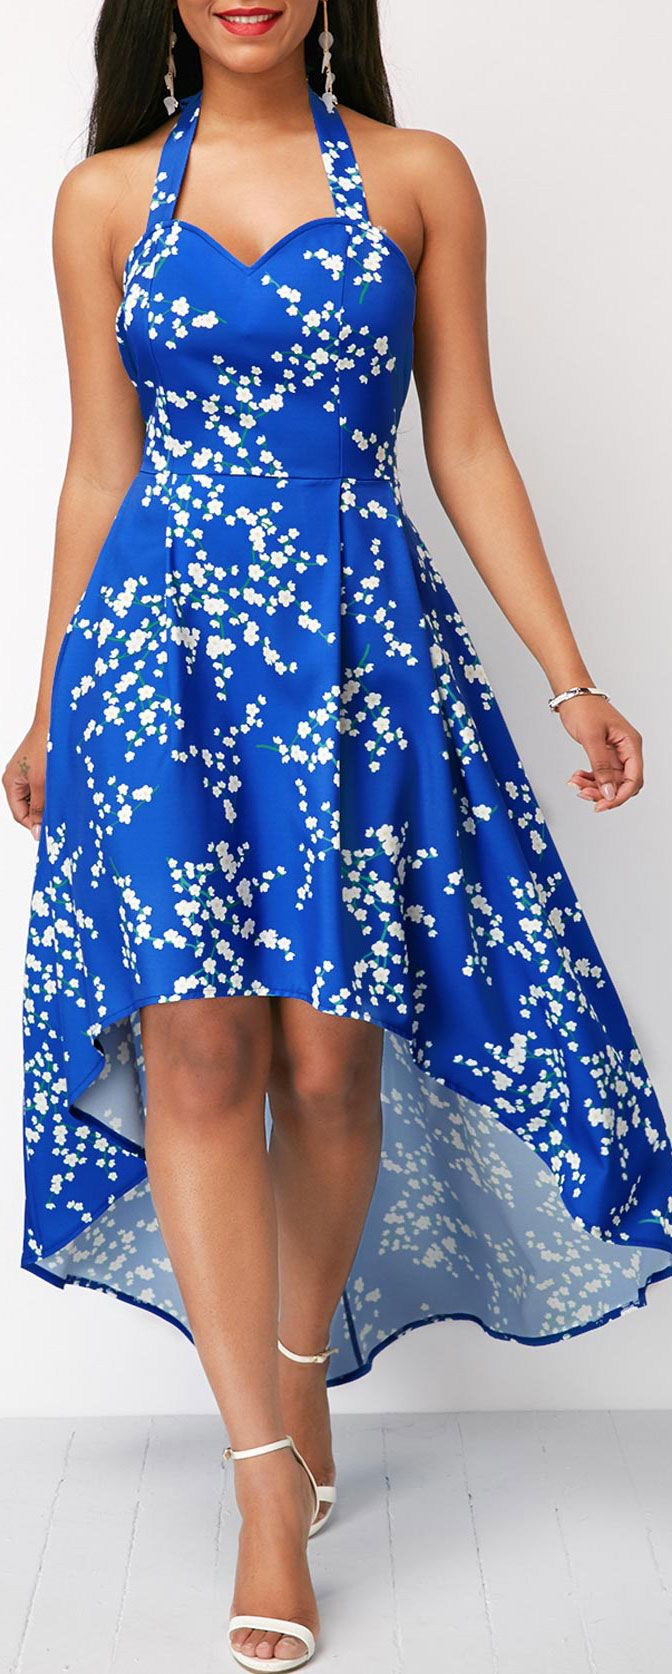 Blue High Low Open Back Printed Dress.